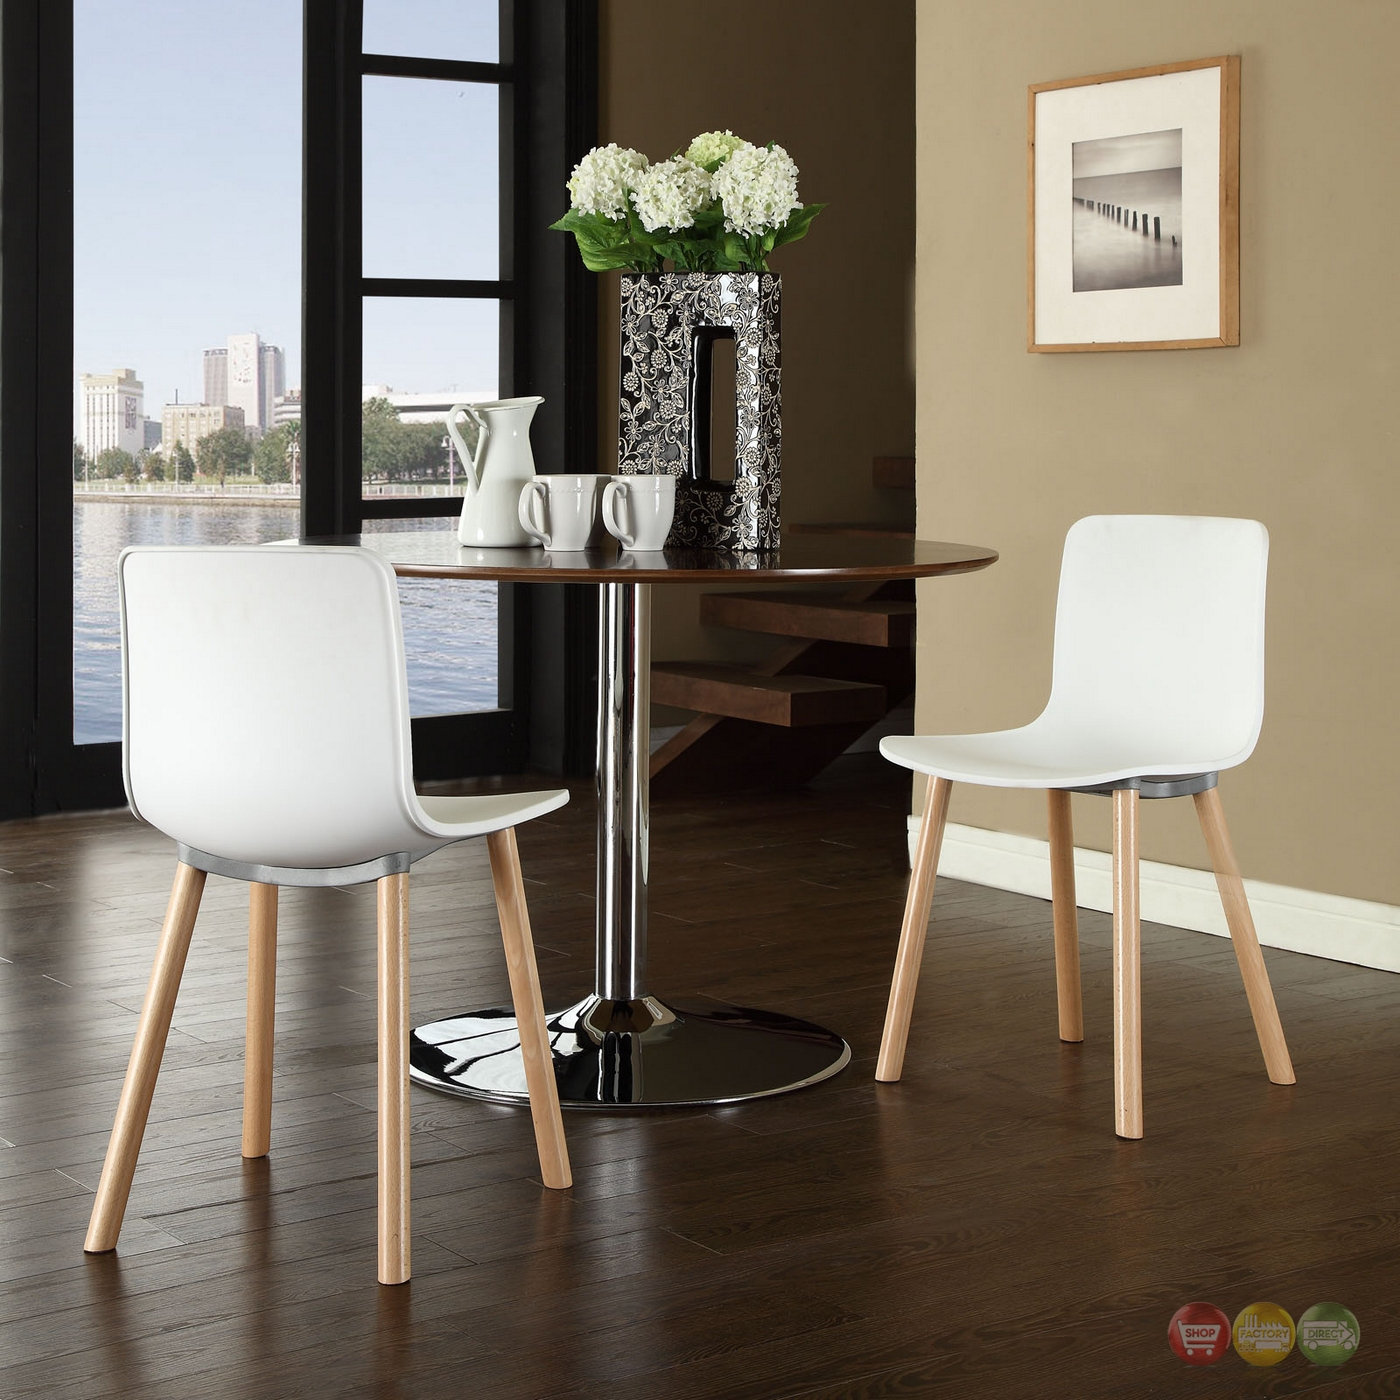 Sprung Modern Molded Plastic Side Chair With Wood Dowel